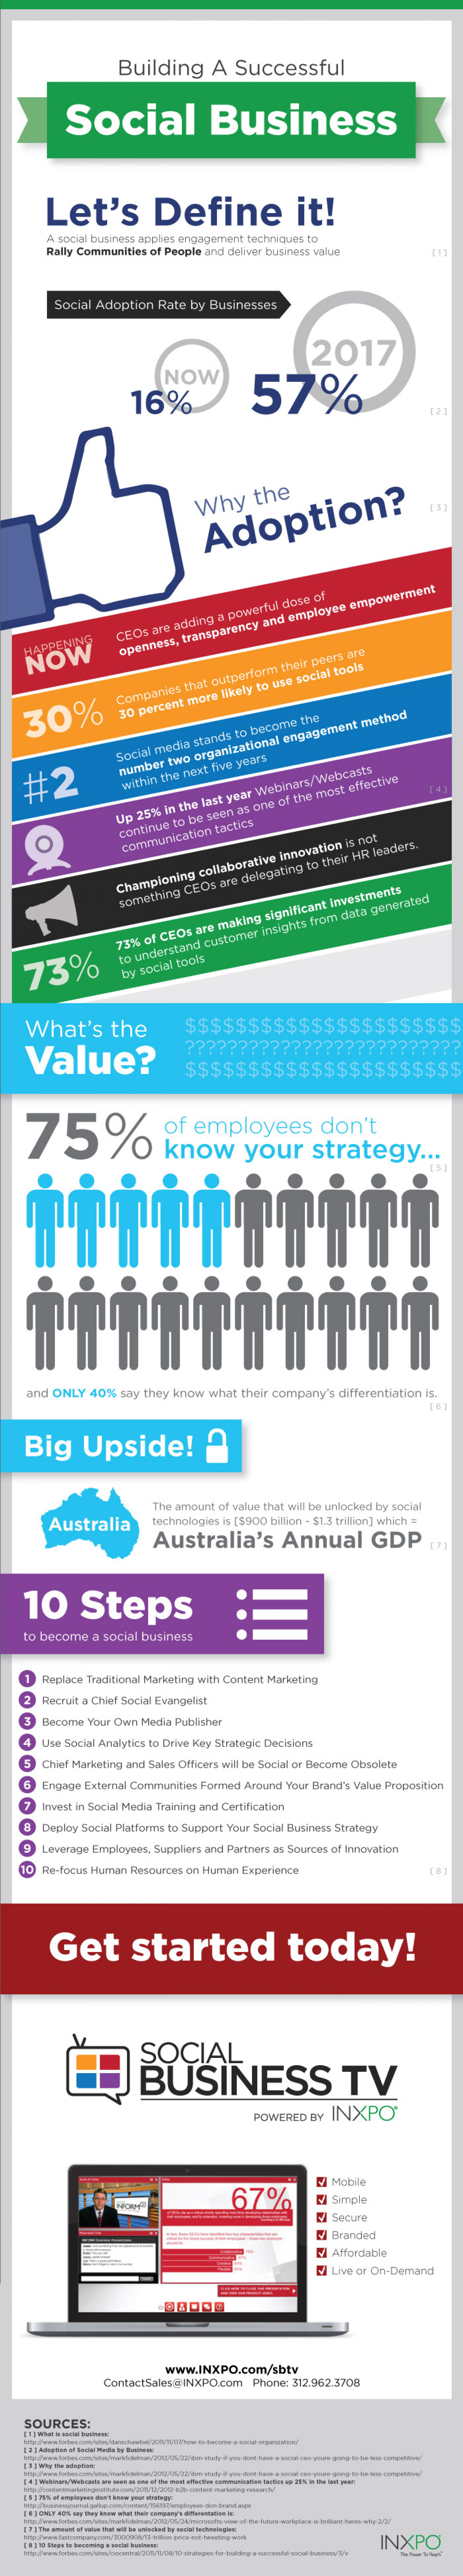 How to Build a Successful Social Business Infographic